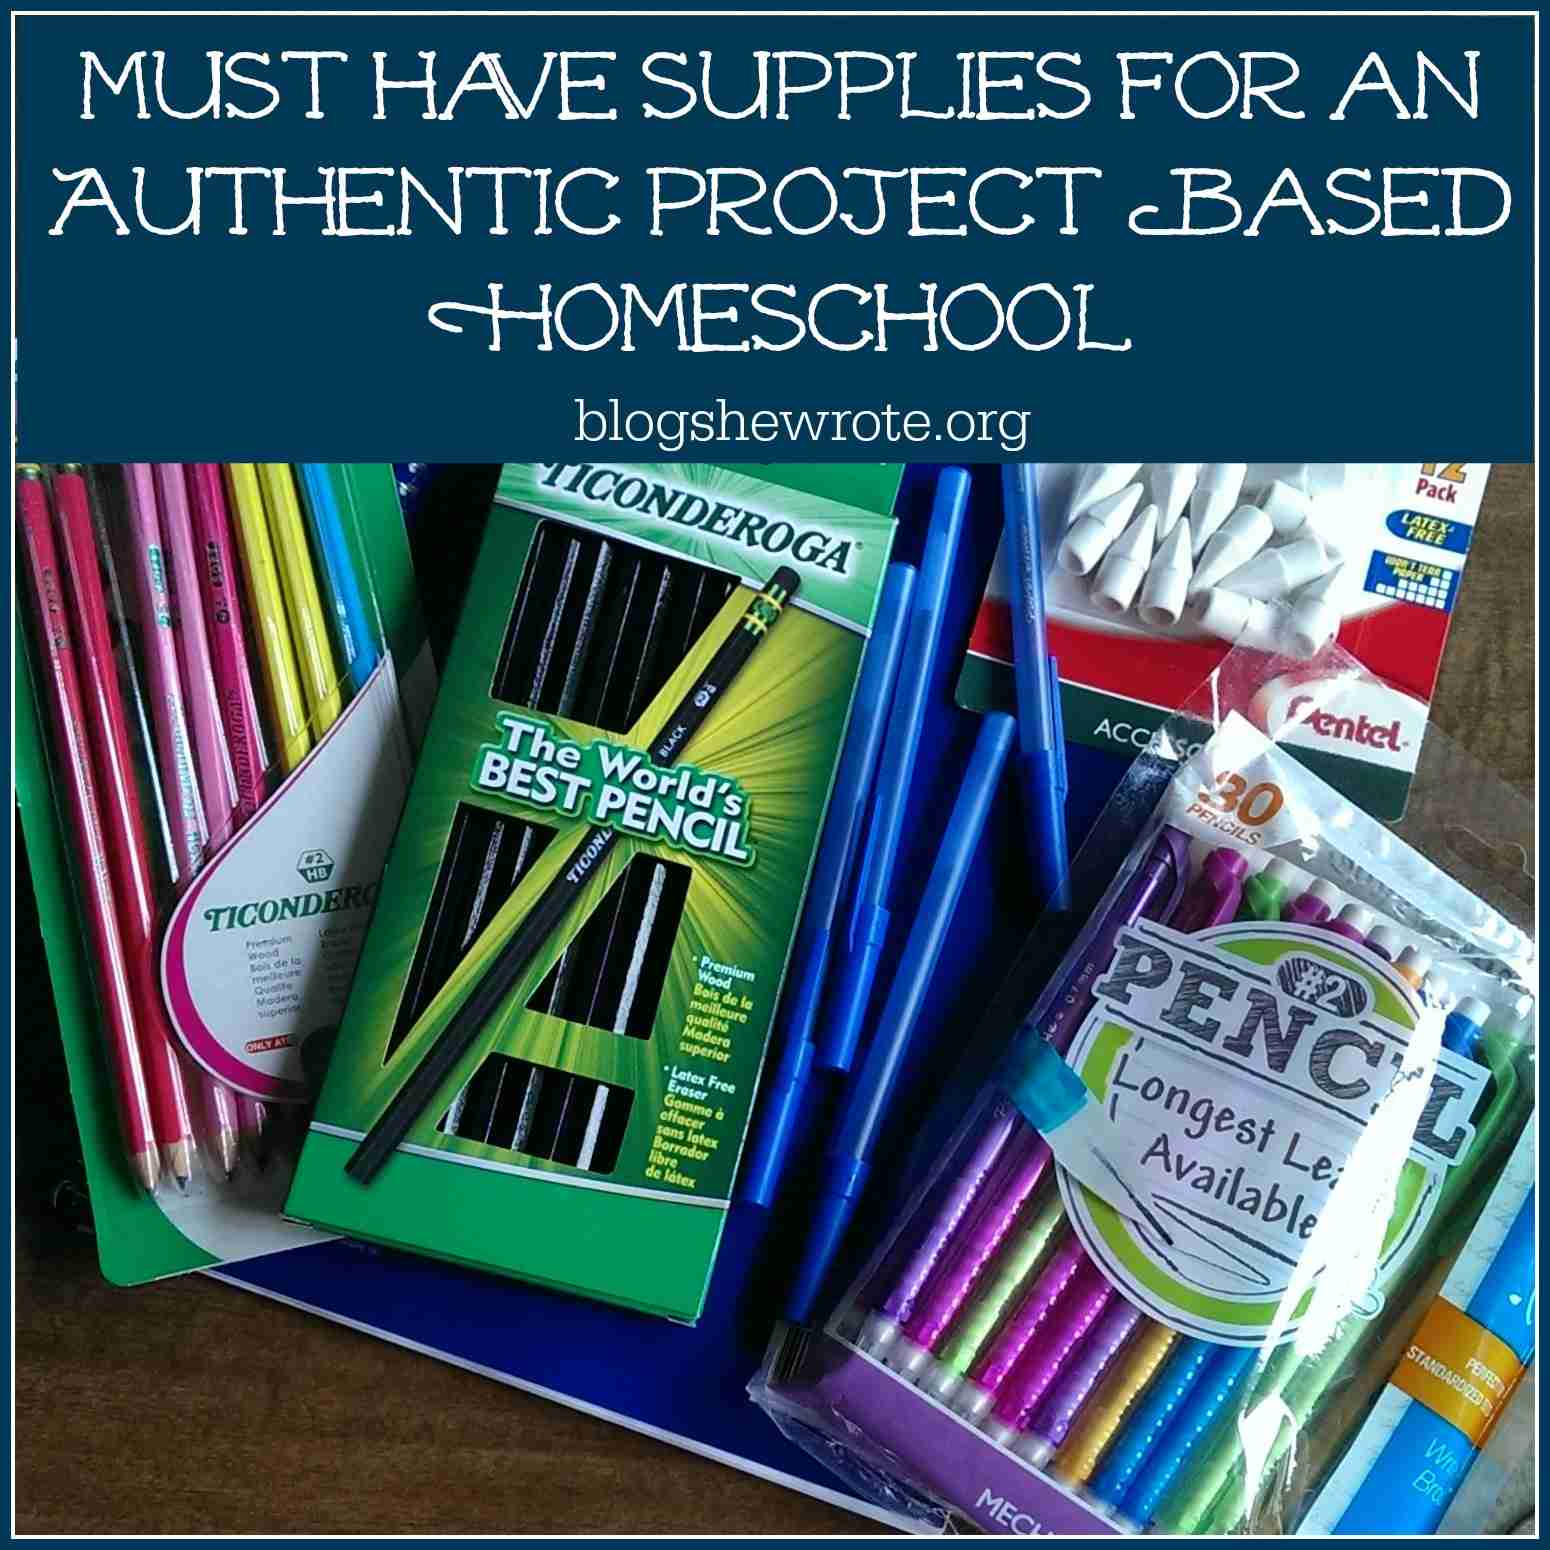 Stem Project Based Learning For Homeschool High School: Must Have Supplies For An Authentic Project Based